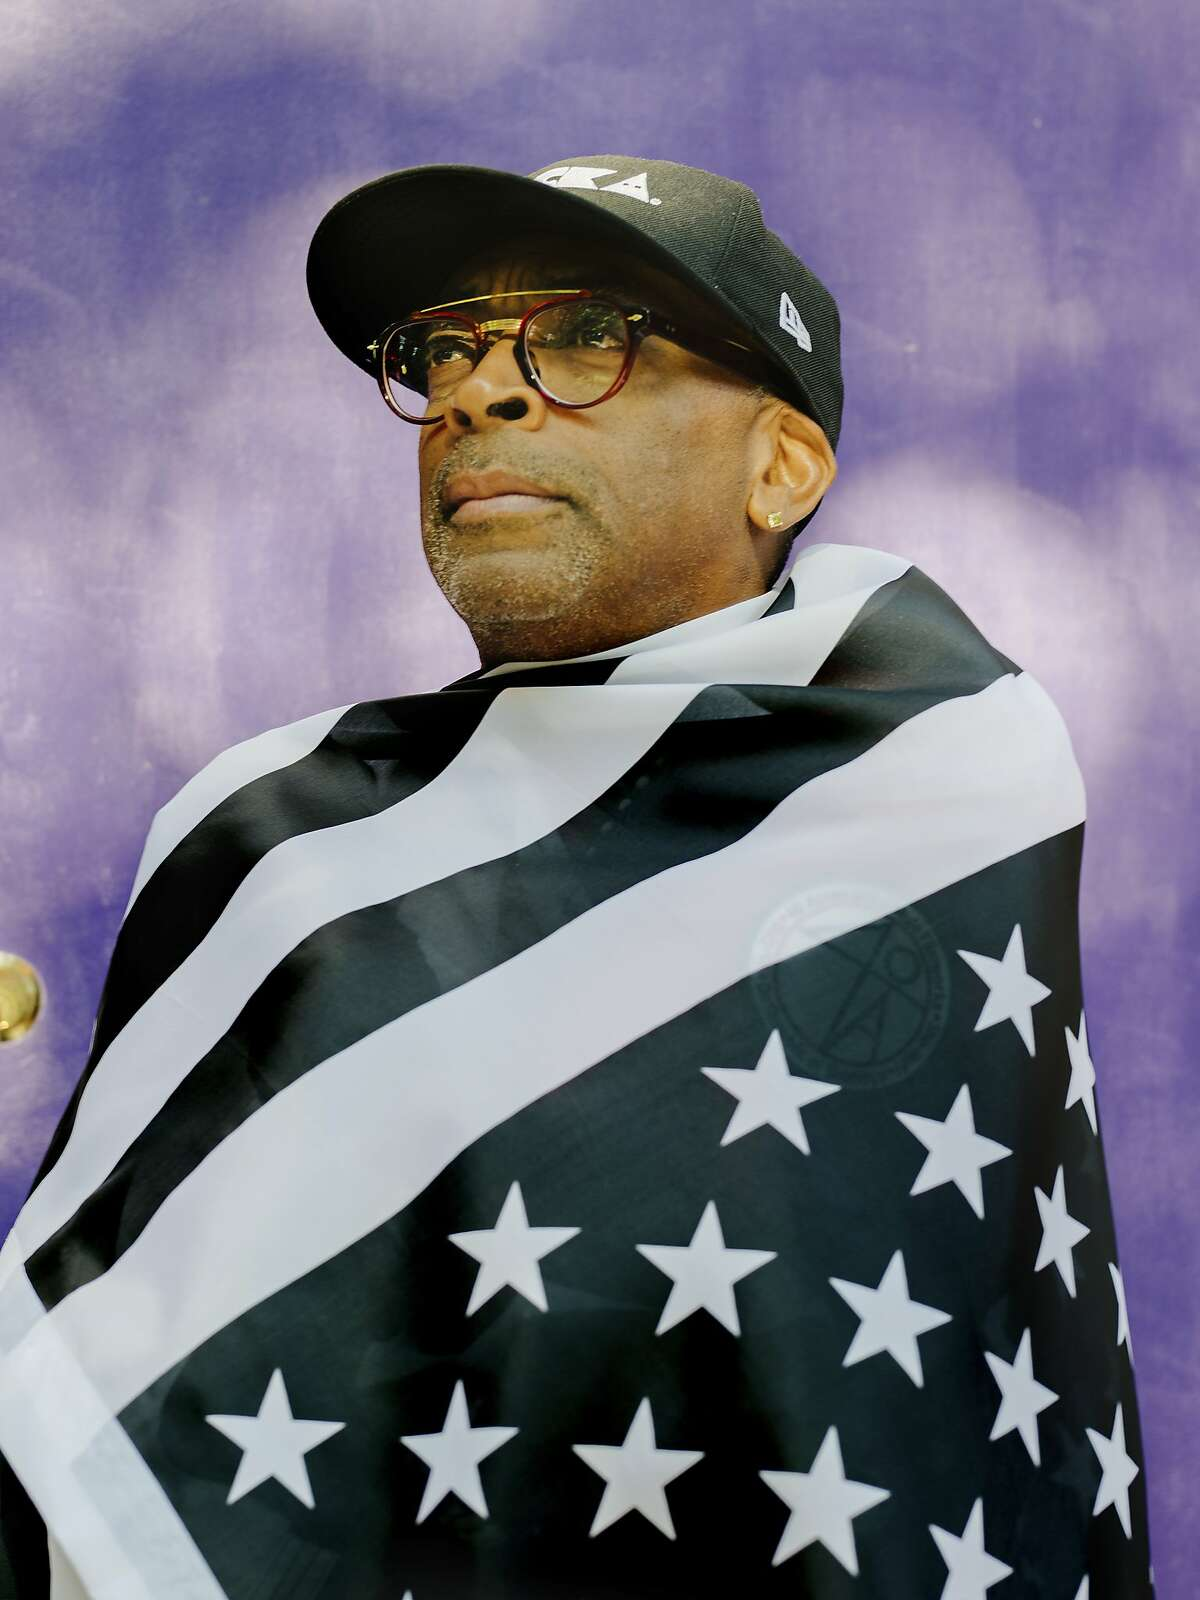 """Director Spike Lee drapes himself in an upside-down, black-and-white American flag in New York, July 20, 2018. In """"BlacKkKlansman,"""" Lee uses the true story of a black police officer infiltrating the Ku Klux Klan in Colorado in the 1970s to once again grapple with American racial terrorism. """"We're living in pure, undiluted insanity,"""" he said. (Heather Sten/The New York Times)"""